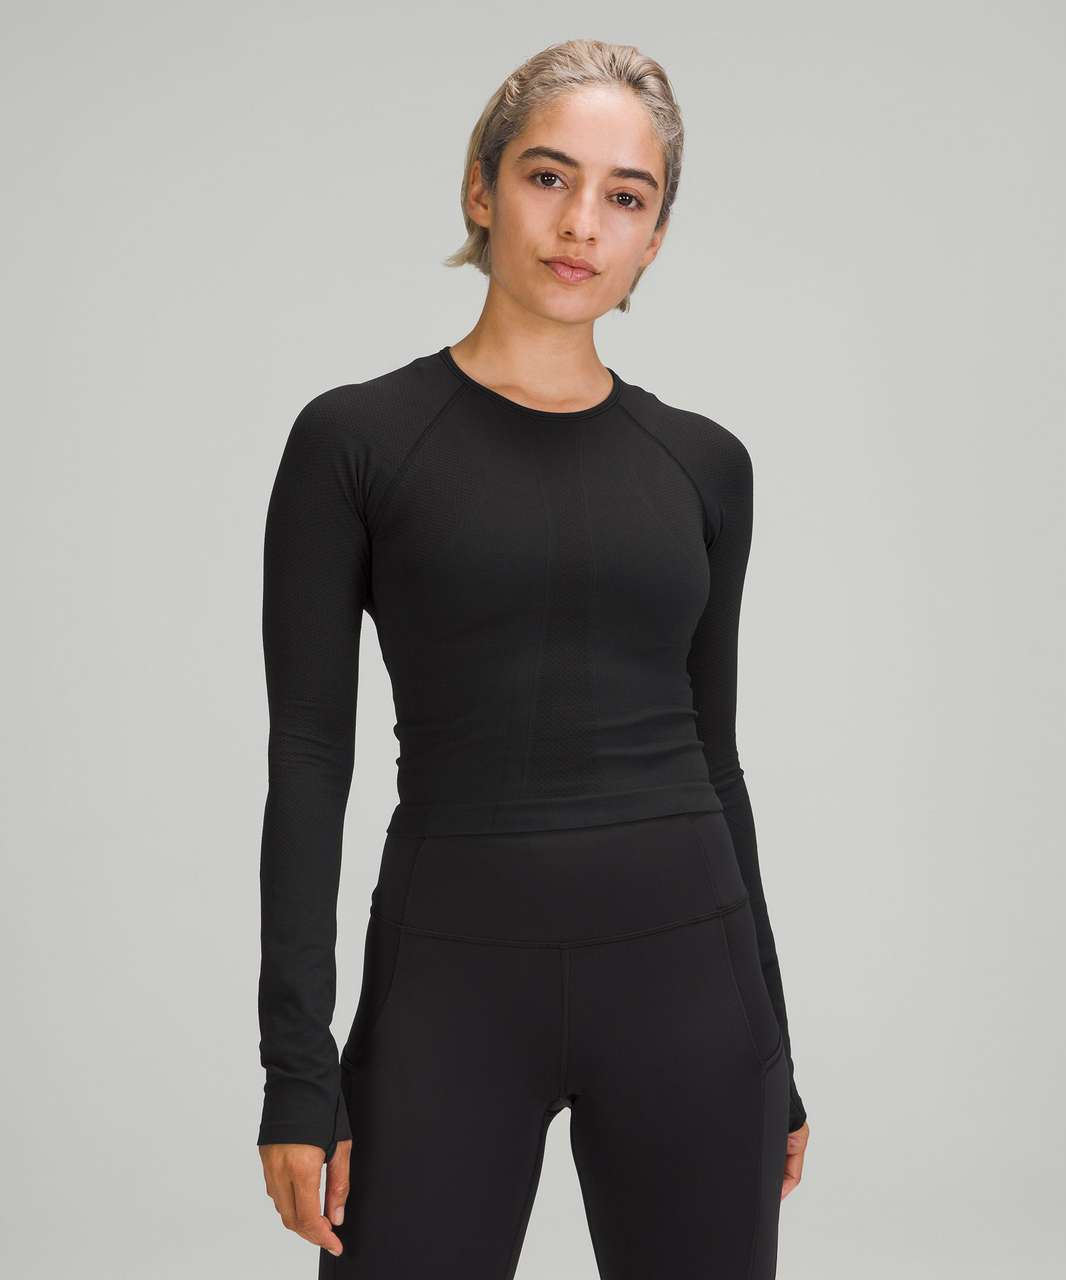 Lululemon For the Chill of it Long Sleeve - Black